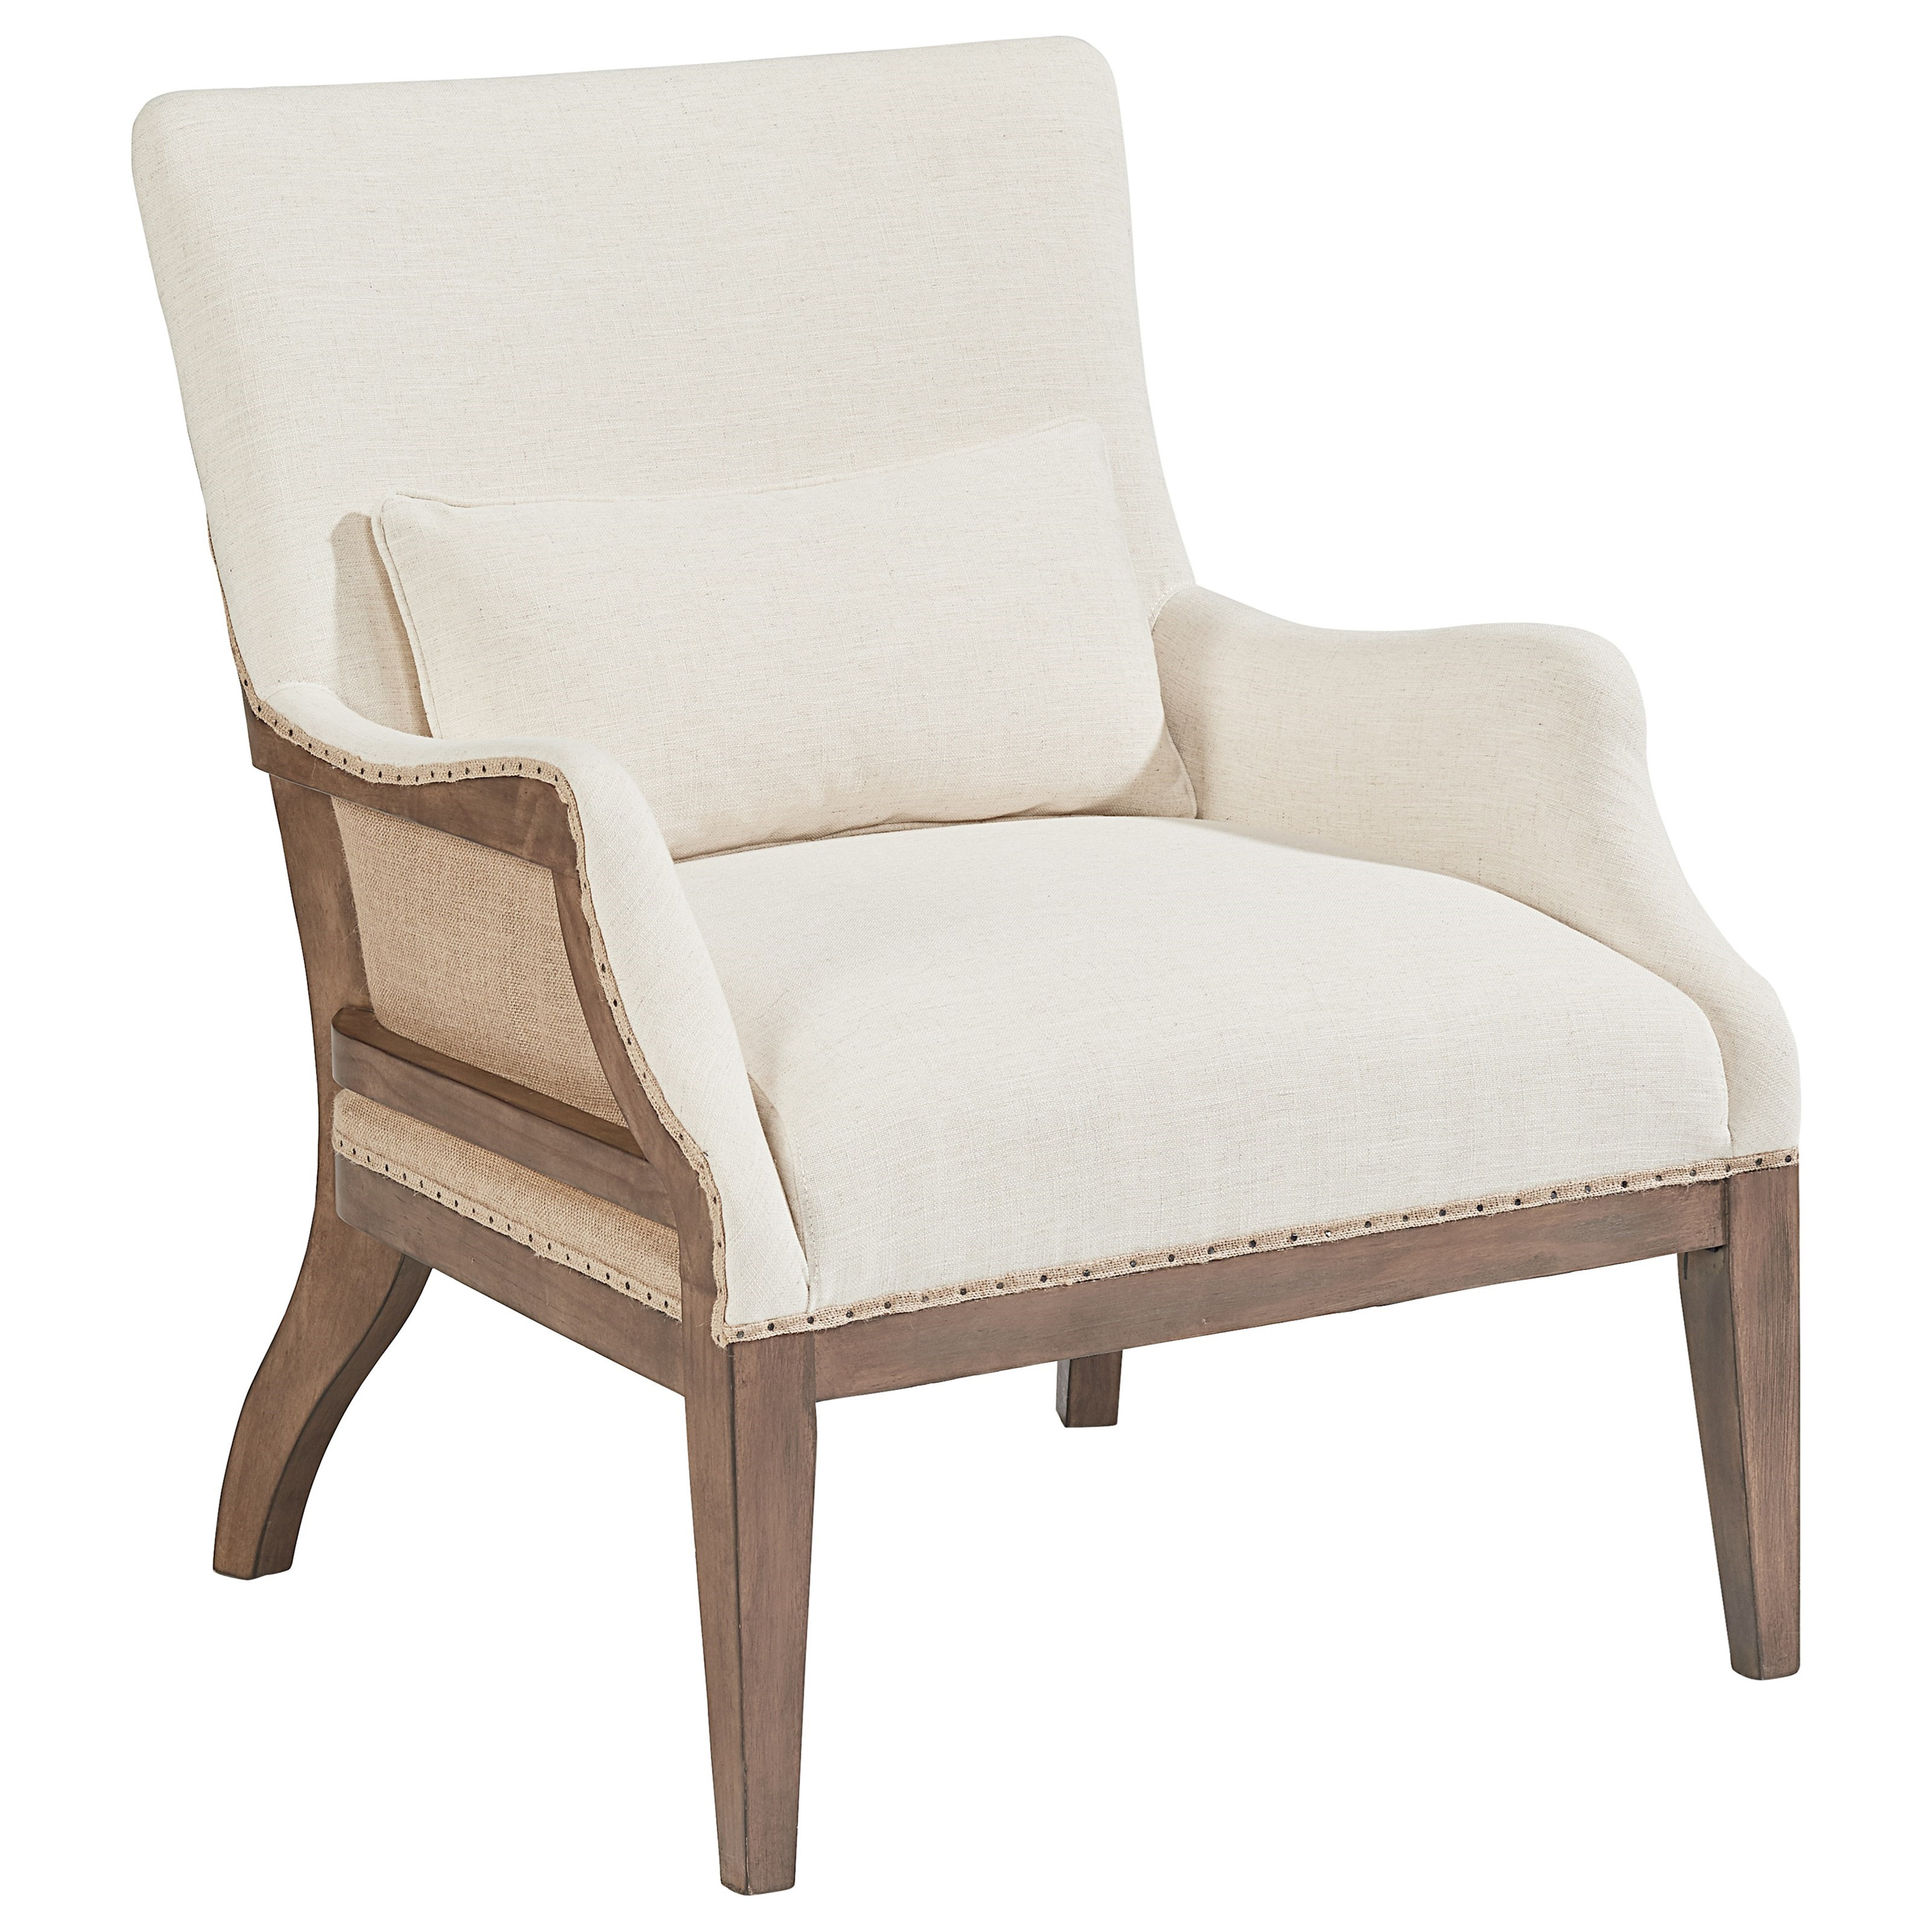 magnolia home by joanna gaines accent chairs renew accent chair  - magnolia home by joanna gaines accent chairs accent chair with kidneypillow  item number